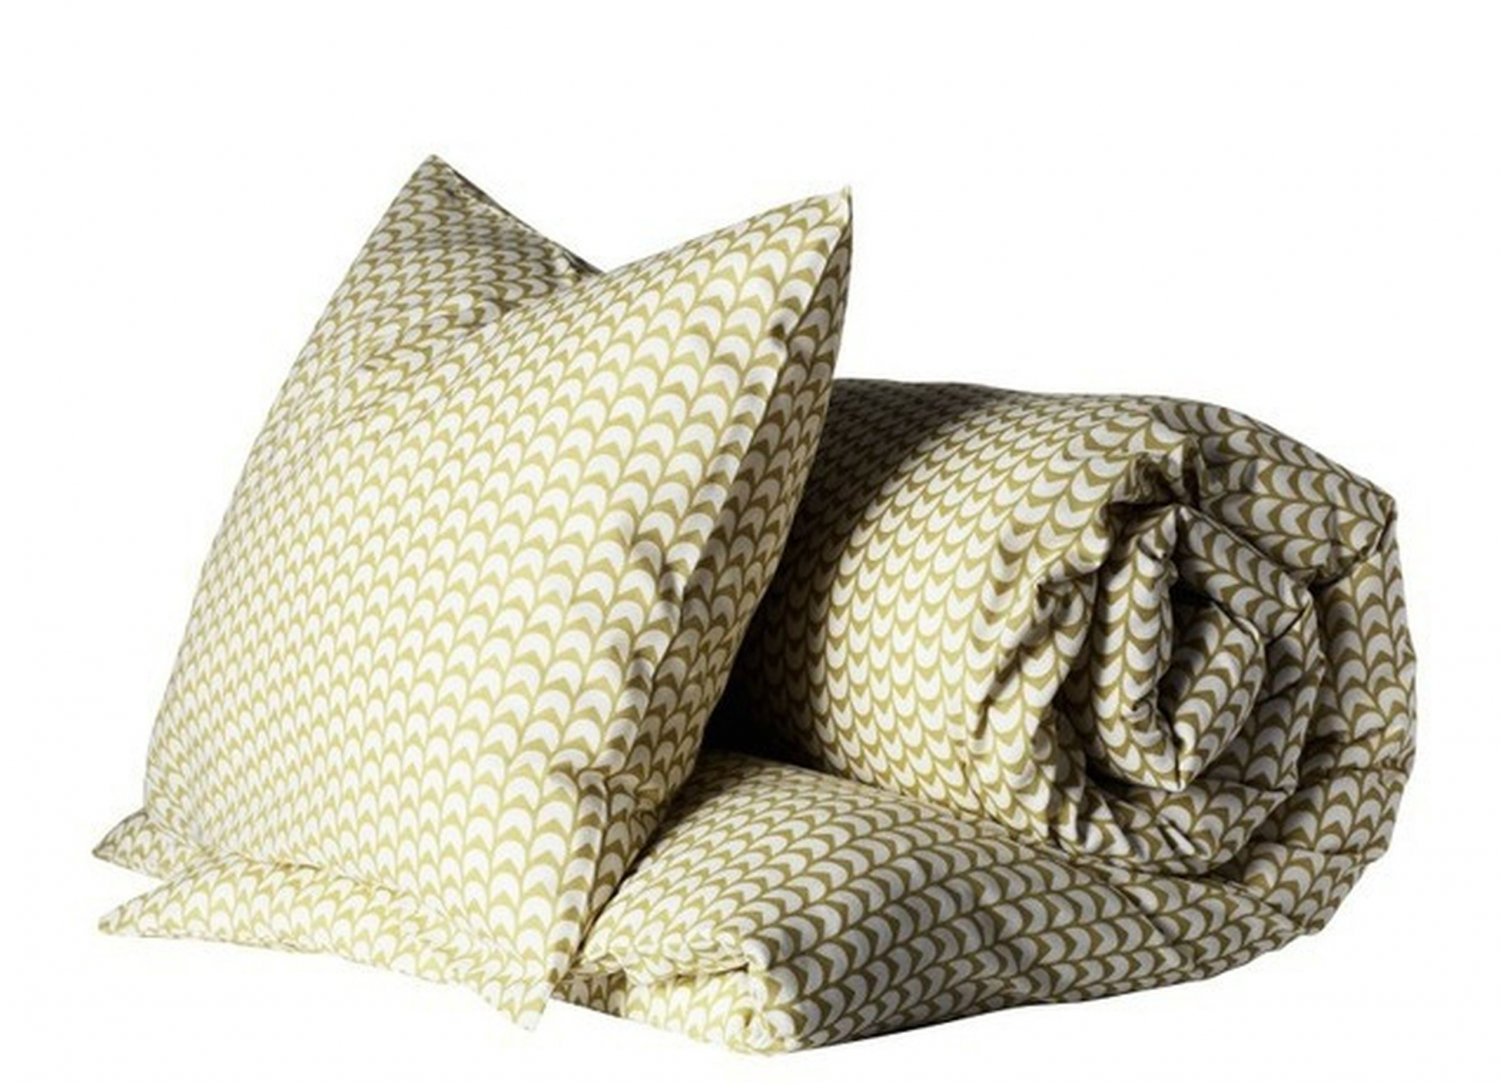 ikea jorun form queen full double duvet cover pillowcases set yellow olive green white abstract - Duvet Covers Ikea